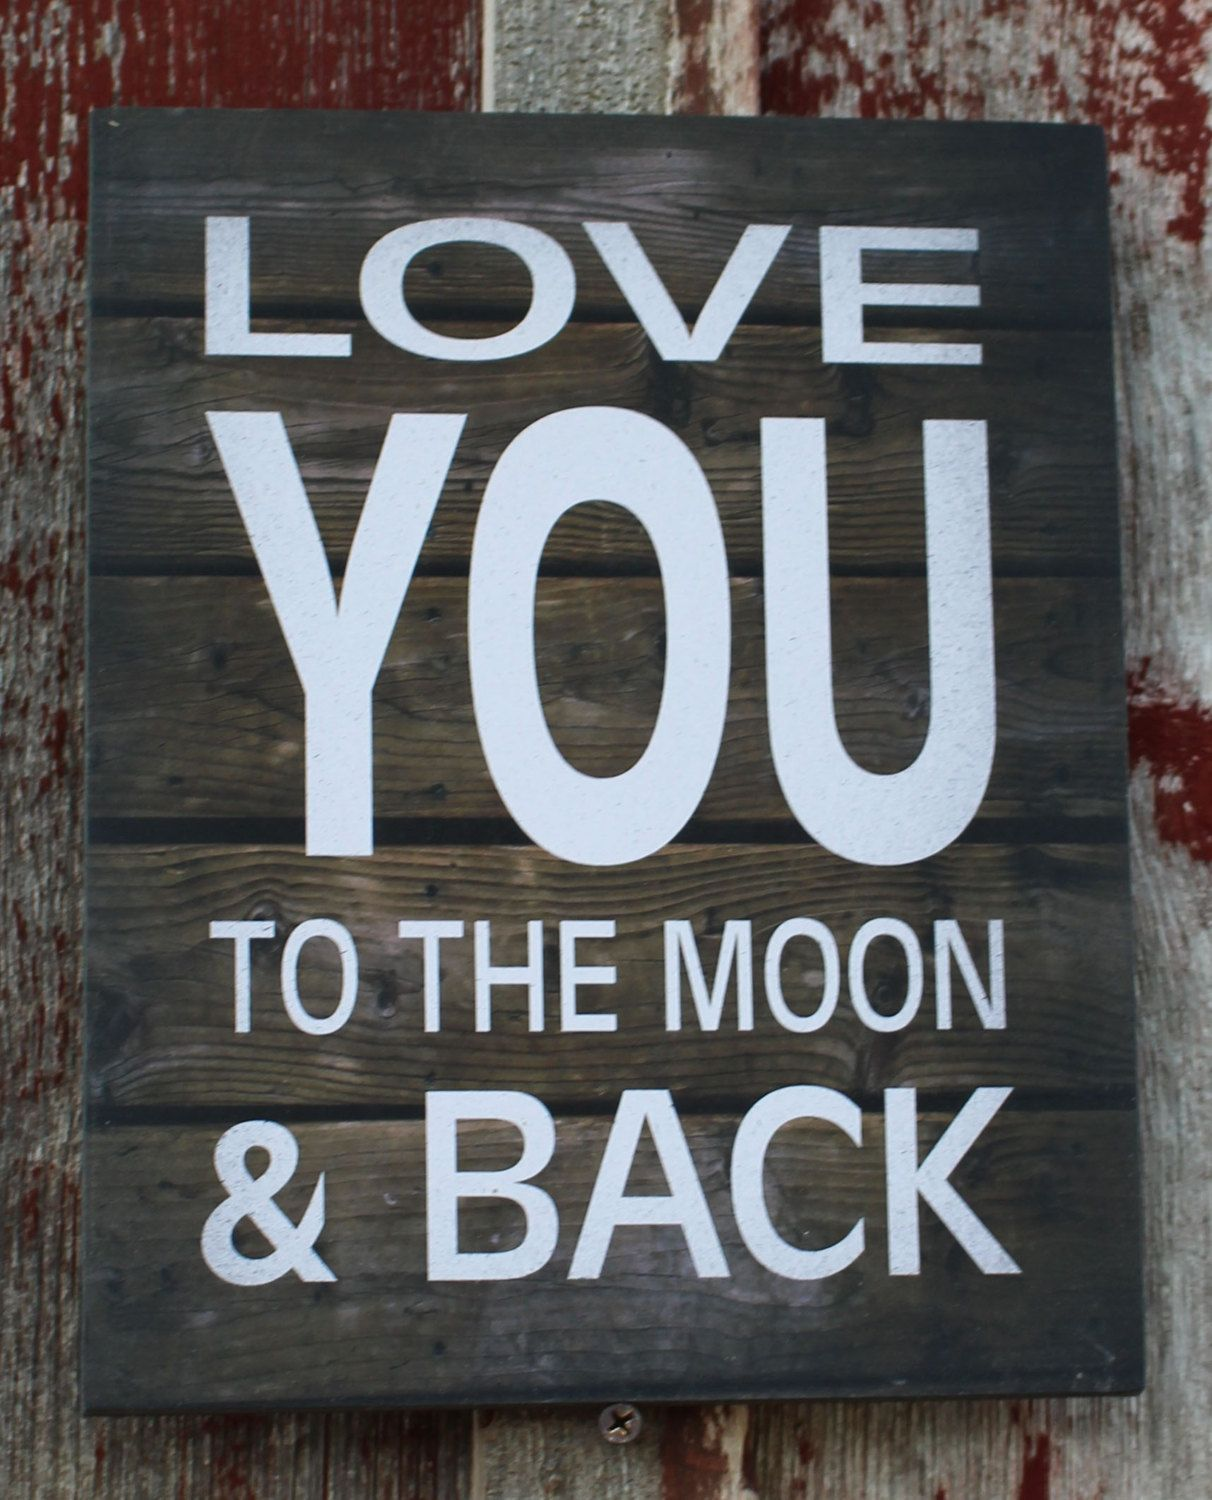 Love You To The Moon & Back - Wood Sign, Canvas Wall Hanging (Large) - Christmas, Birthday, Mother's Day, Anniversary by HeartlandSigns on Etsy